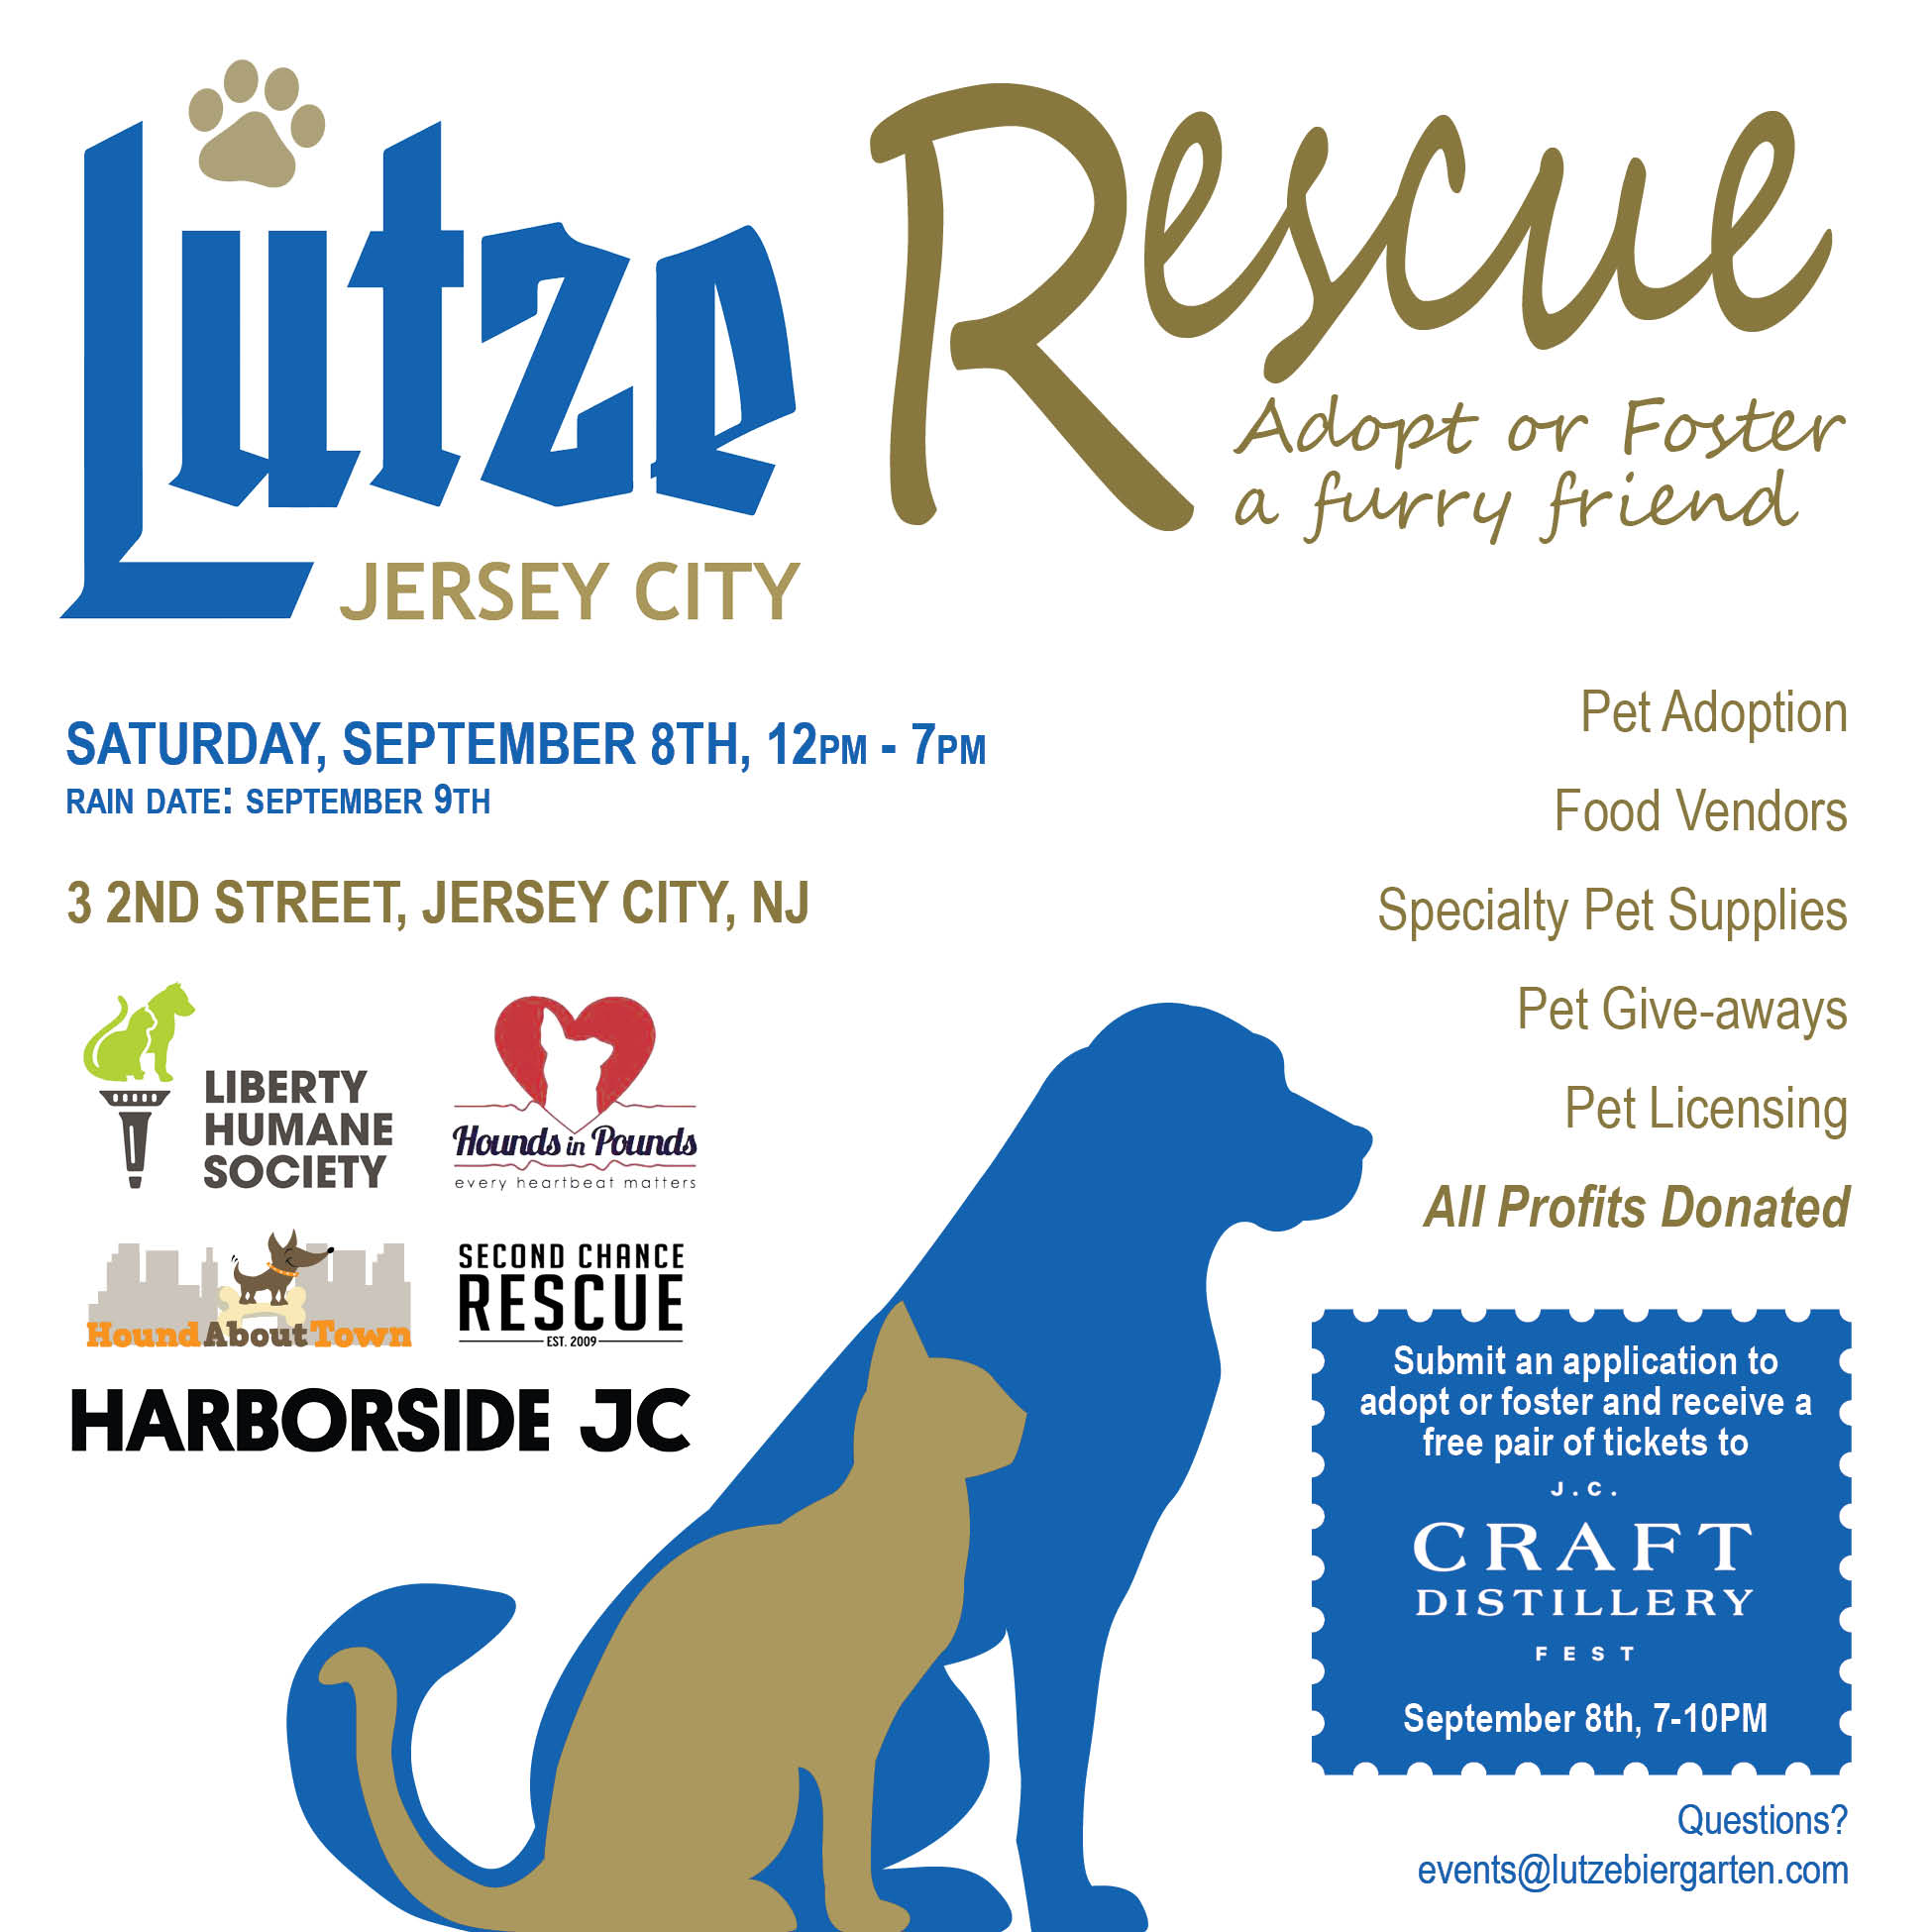 Lutze_Rescue_Flyer_-_Instagram_-_2018_-_v3.jpg.jpeg